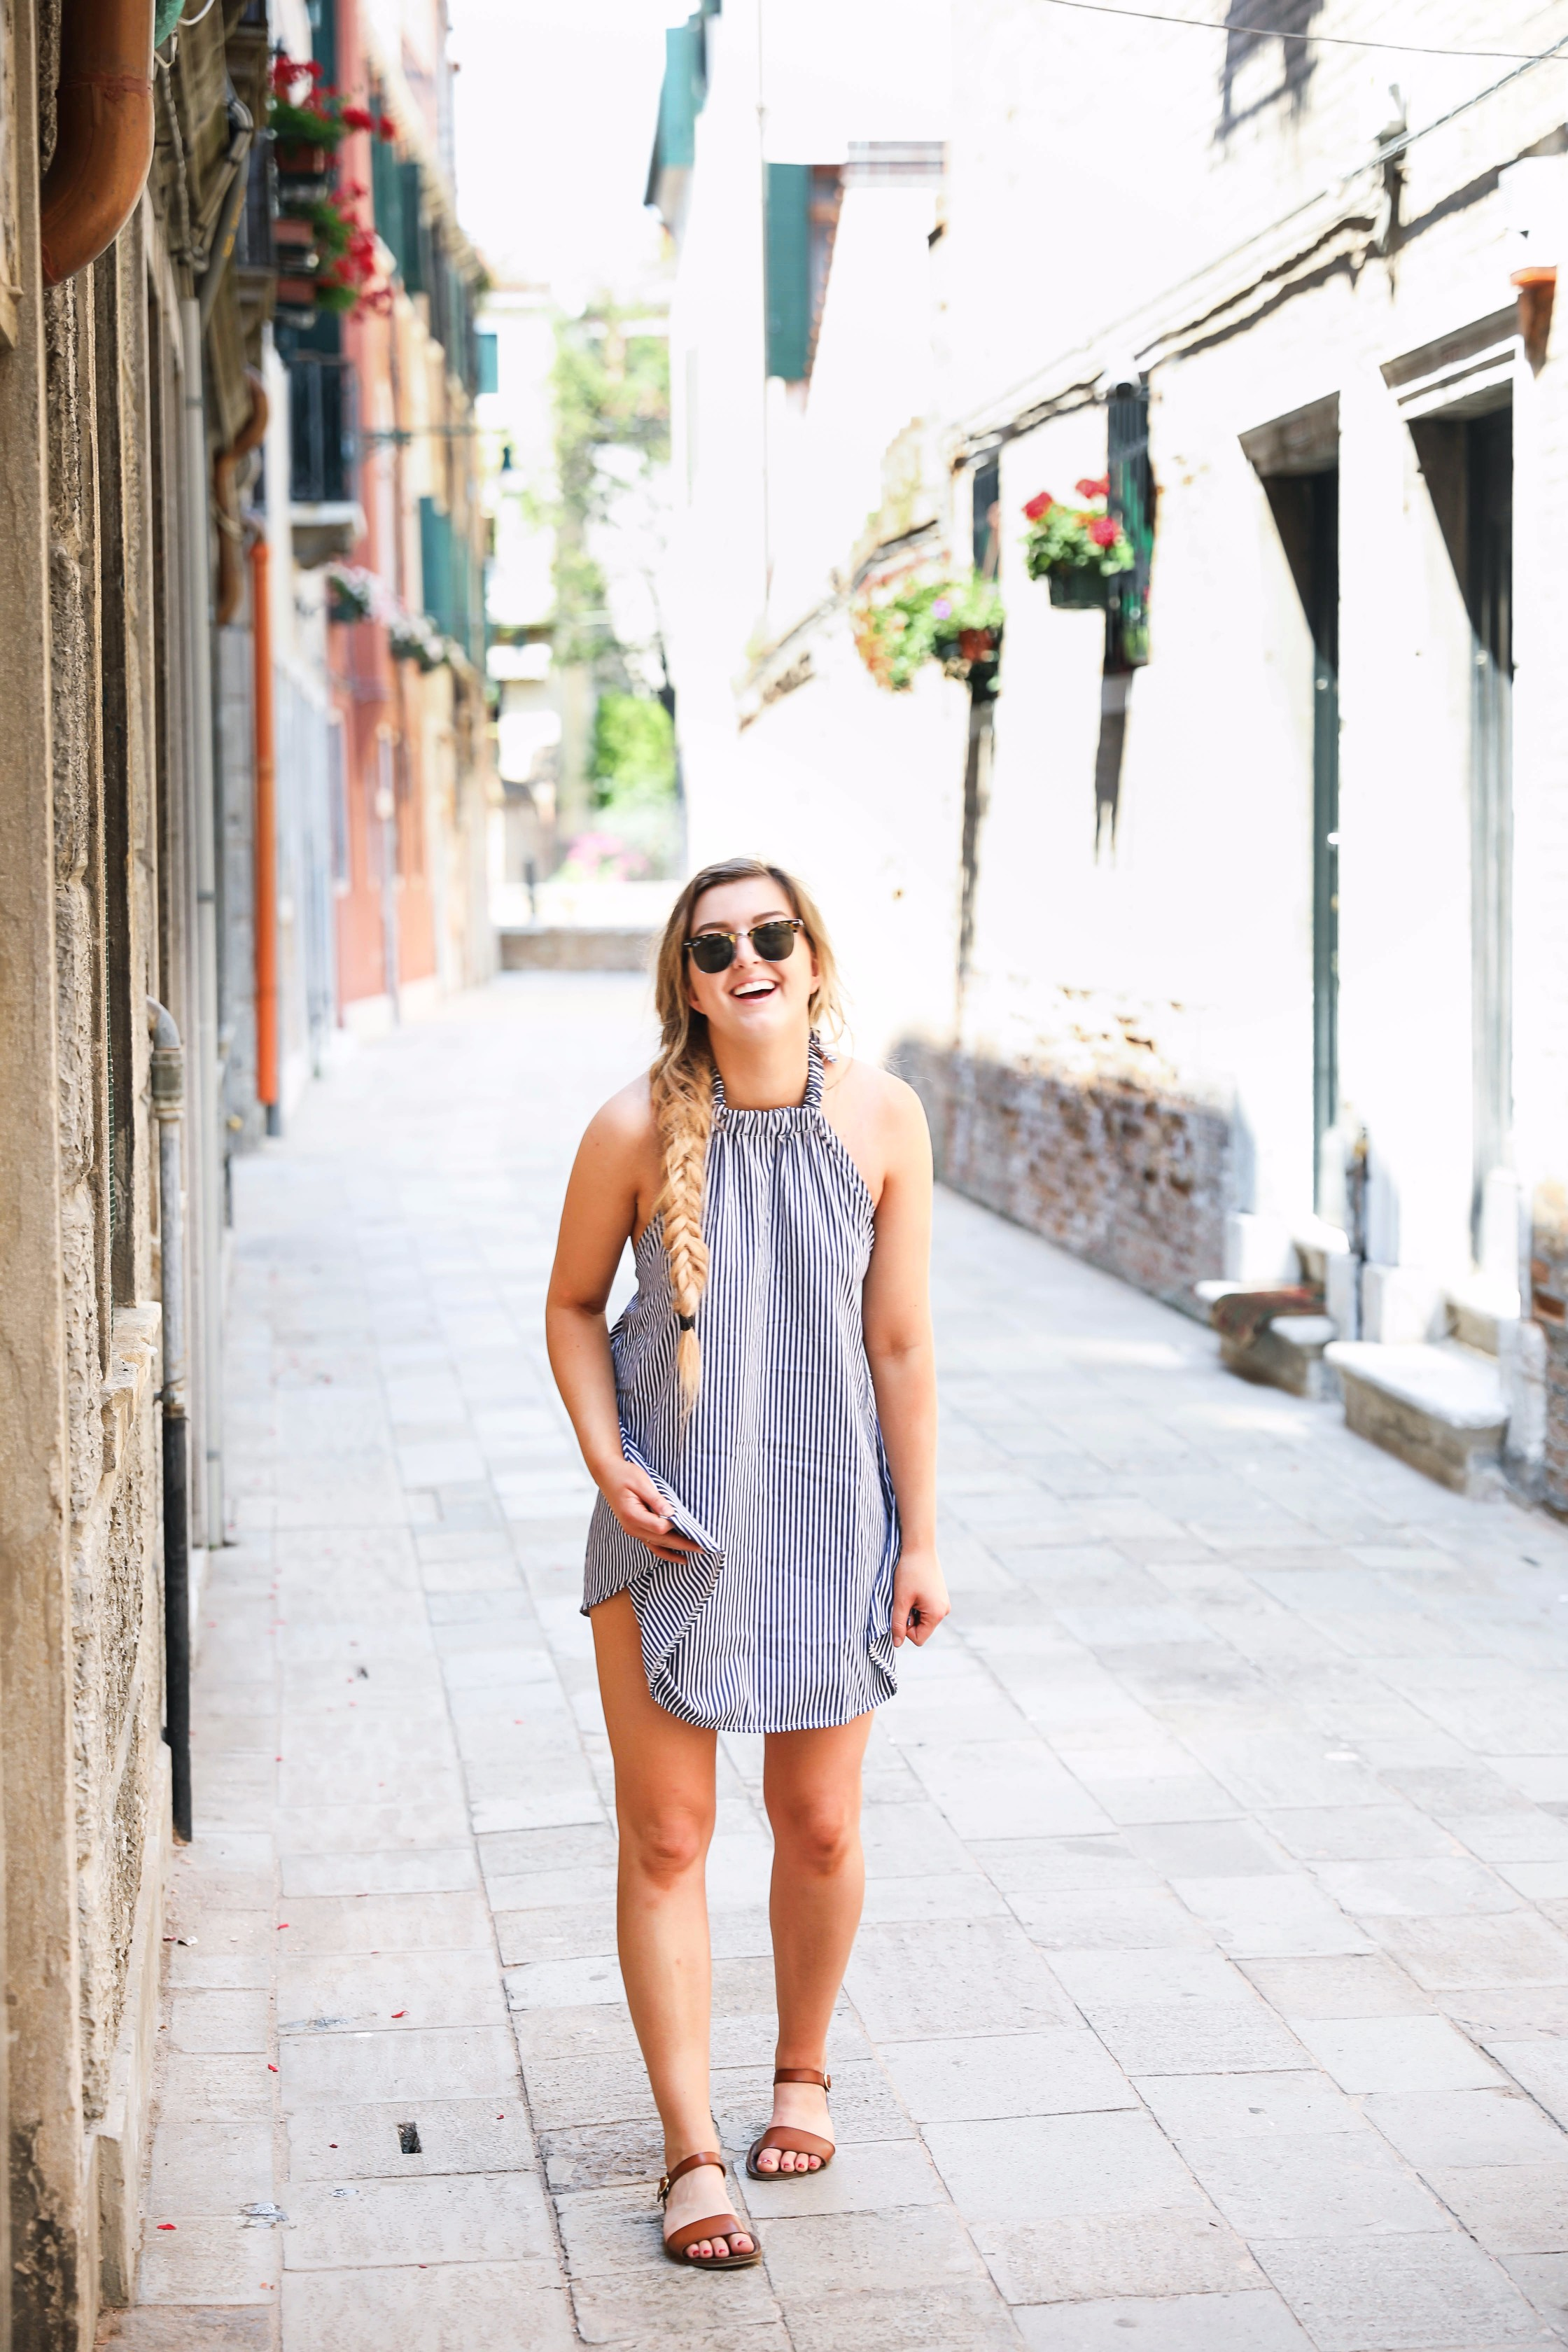 Venice, Italy trip and striped halter dress by lauren lindmark fashion blog daily dose of charm